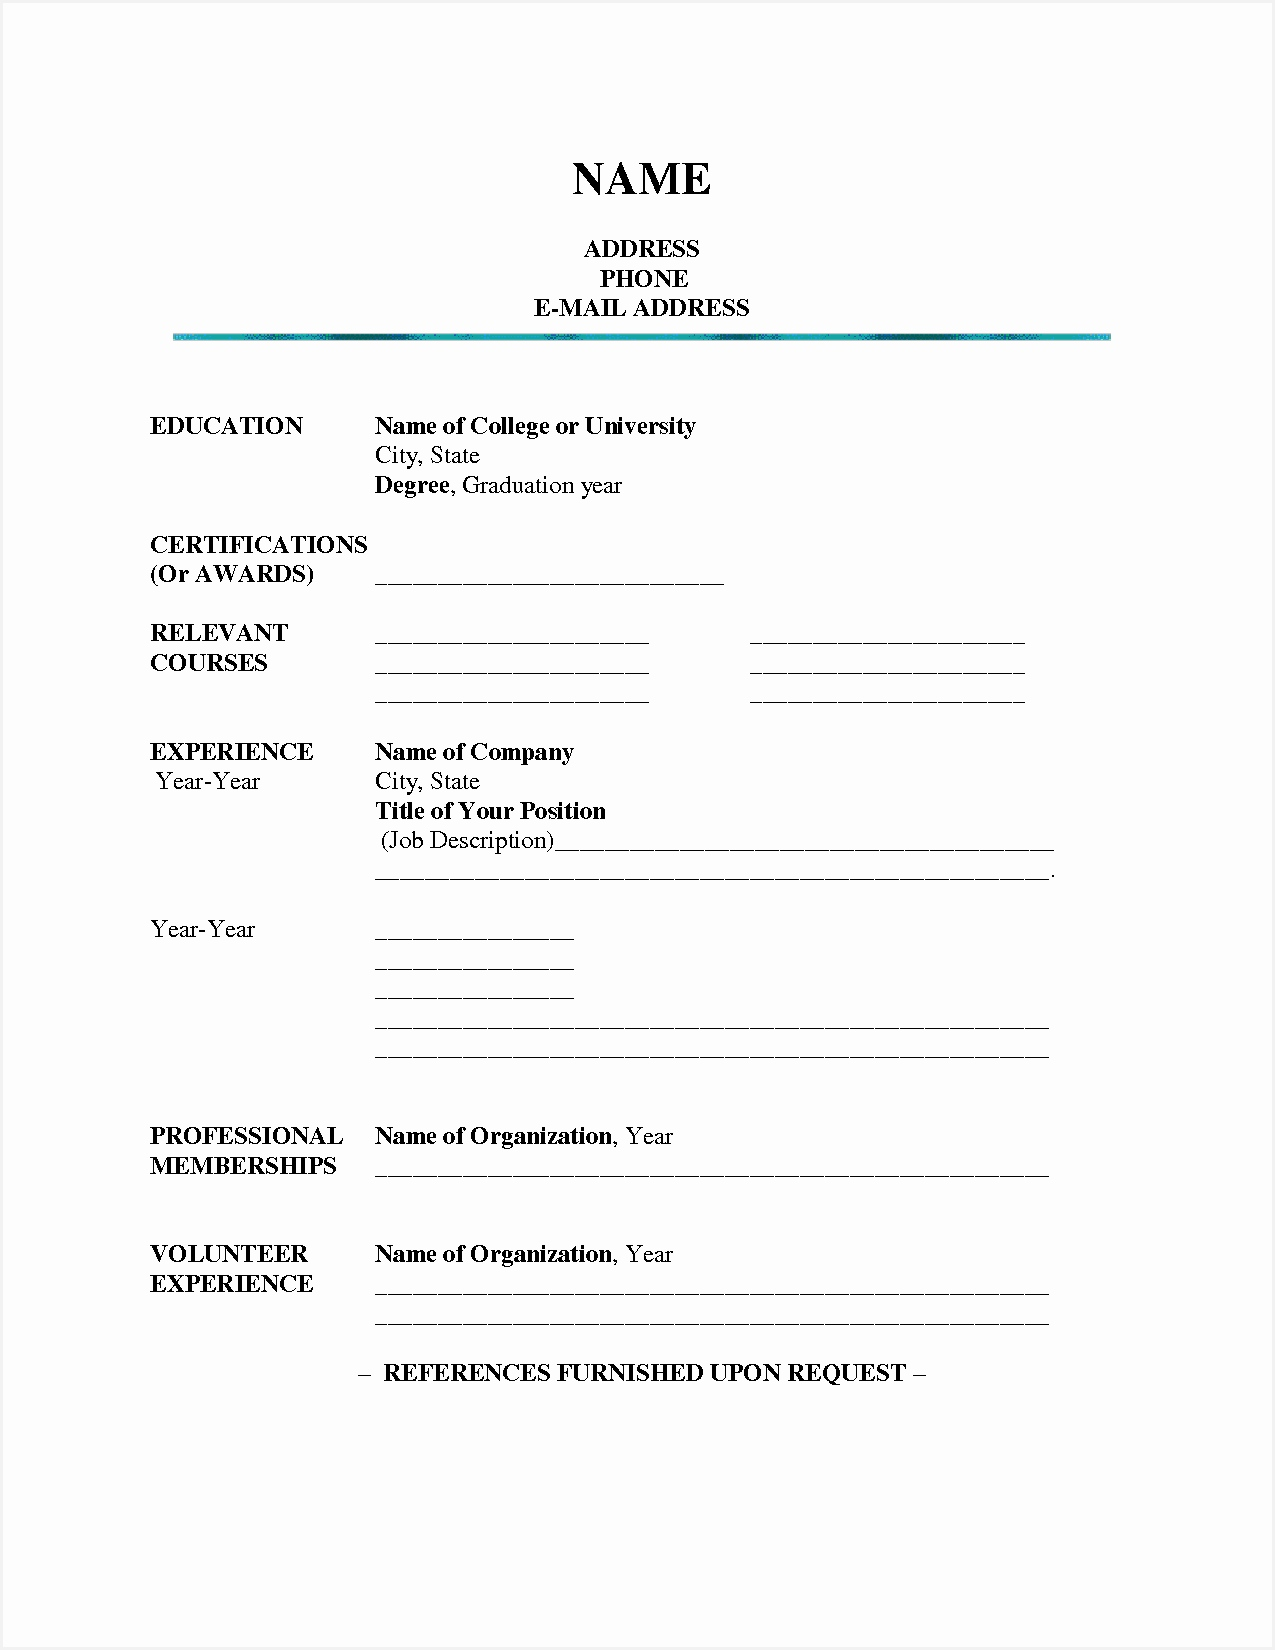 Free Printable Fill In the Blank Resume Templates Samples16501275